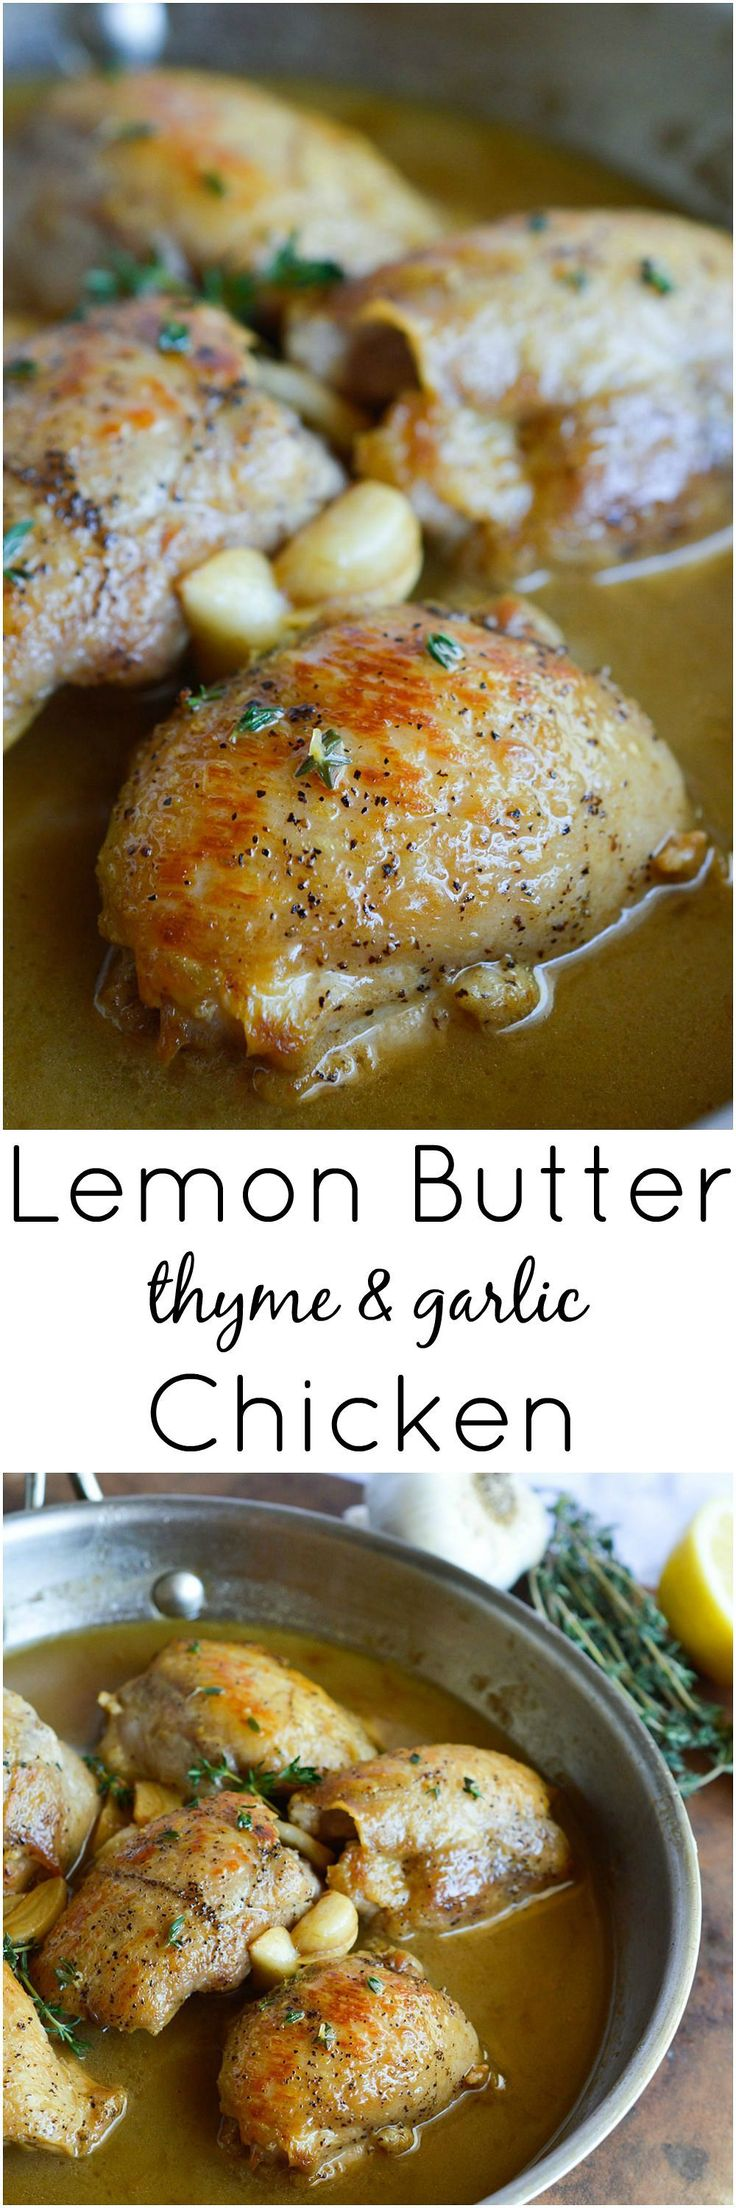 Lemon Butter Chicken Thighs #lowcarb